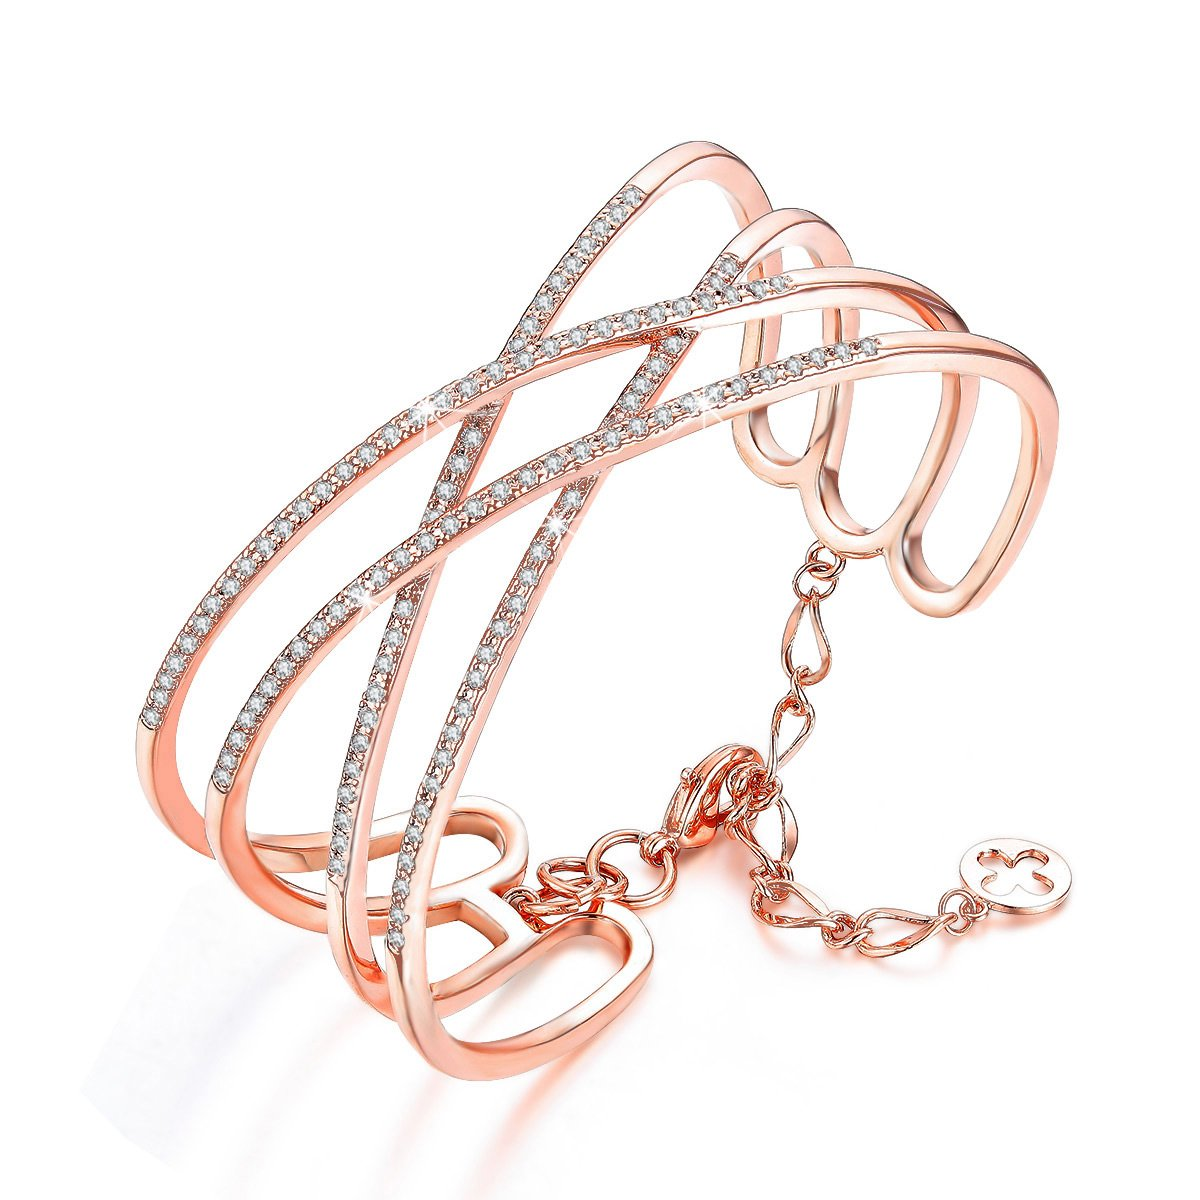 SPILOVE Serend Charm Cubic Zirconia Criss Cross Wide Cuff Bangle Bracelet in 18k Rose Gold Plated Women Jewelry, Gifts for Graduation